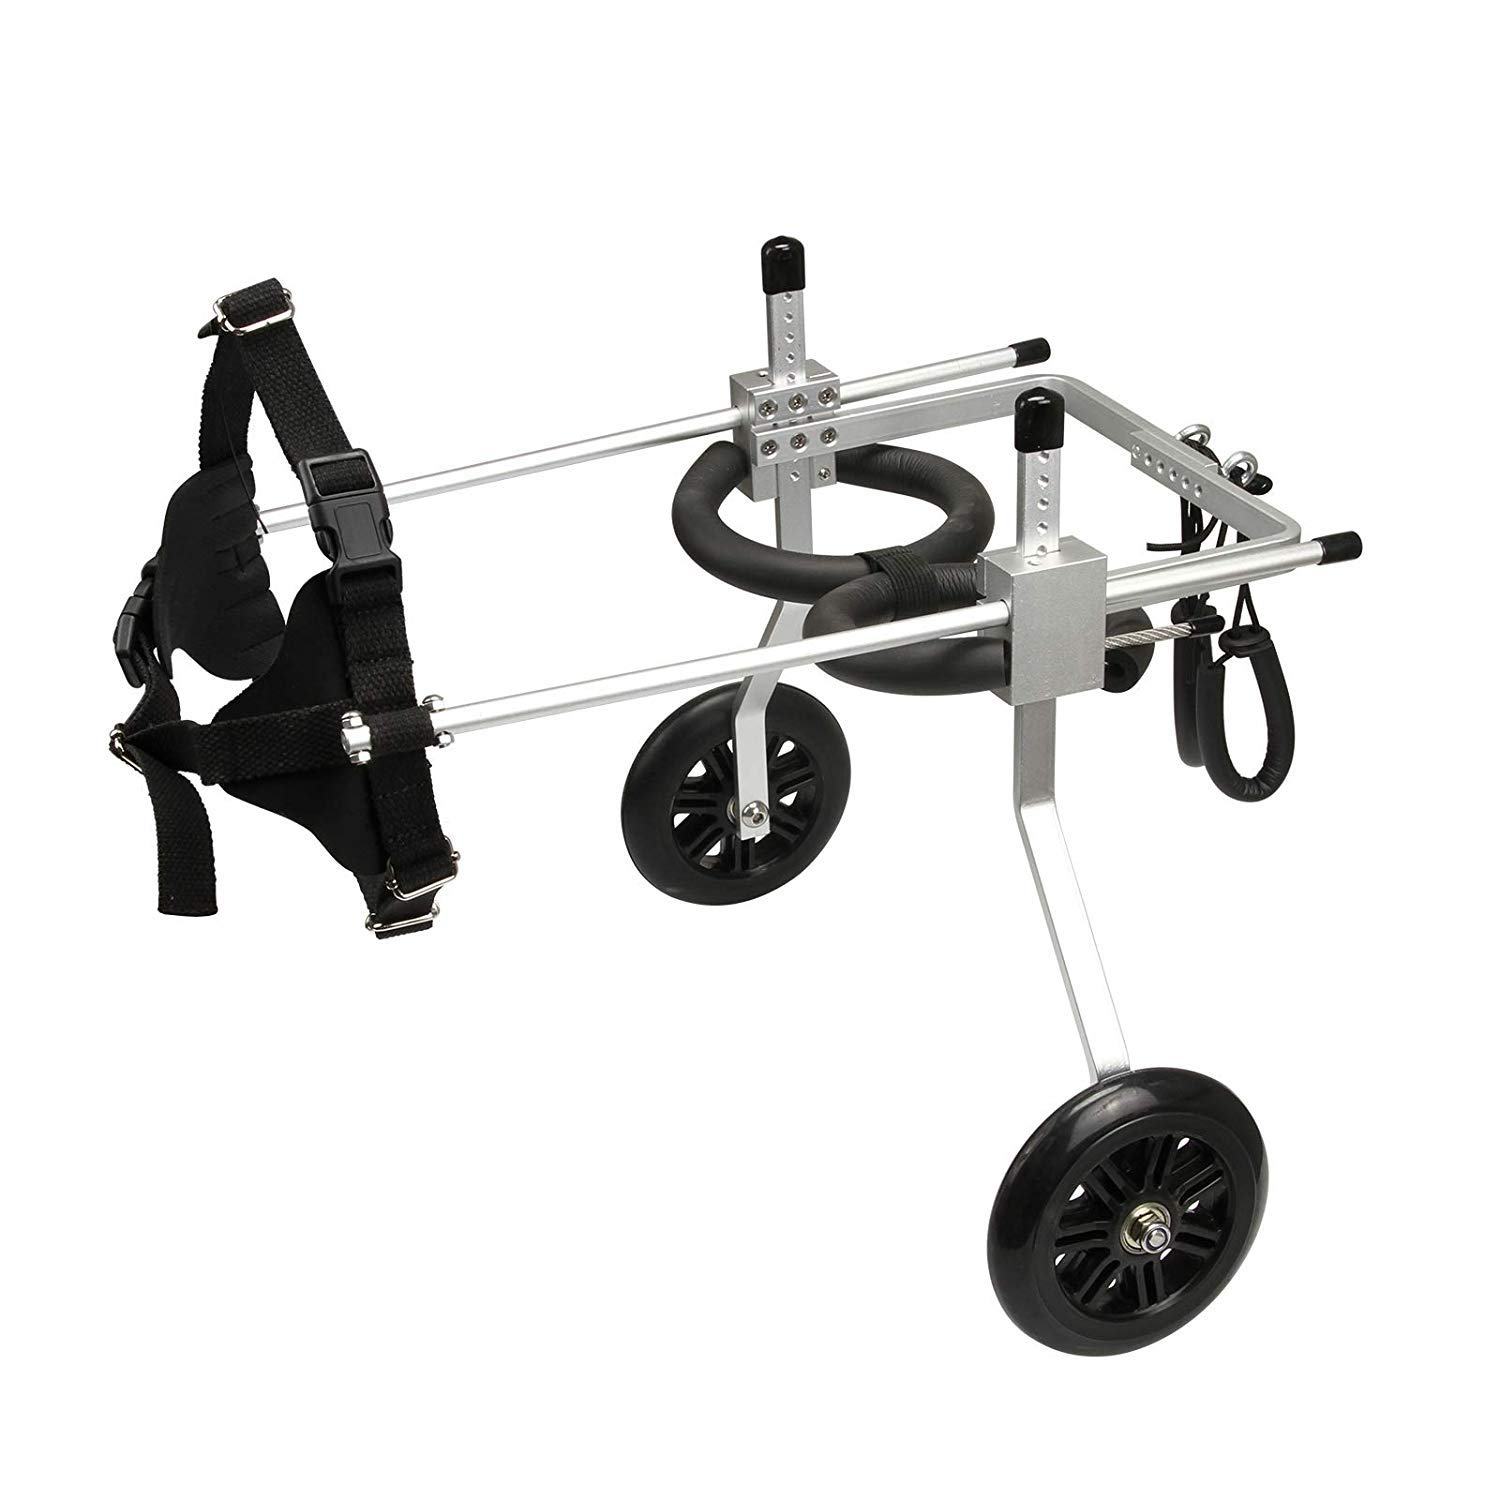 Anmas Home Adjustable Dog Wheelchair for Small Dogs Hip Height 13''-16'', Wheelchair for Back Legs Rehabilitaion